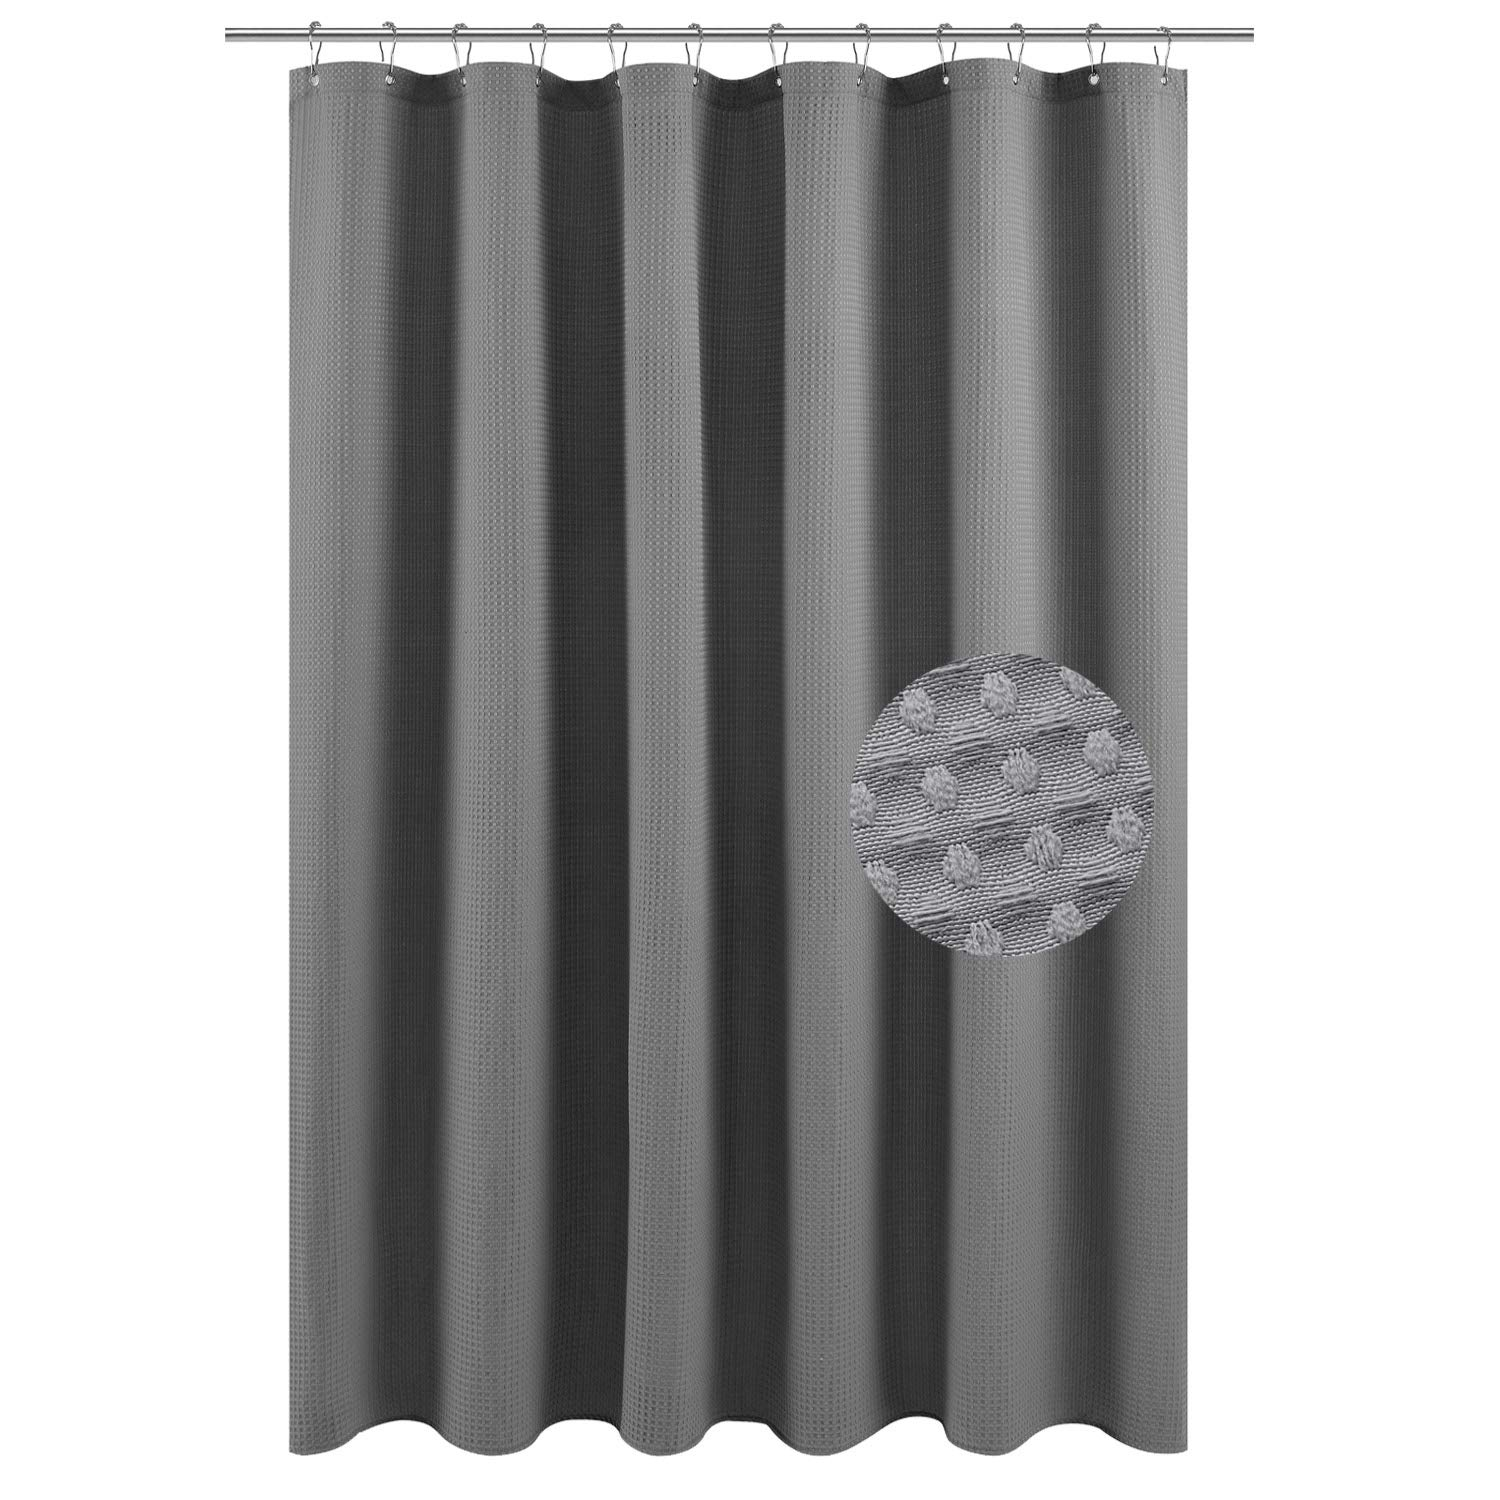 Barossa Design Long Fabric Waffle Weave Shower Curtain 78 inch Height, Hotel Collection, 230 GSM Heavy Duty, Water Repellent, Machine Washable, Gray Pique Pattern, 71x78